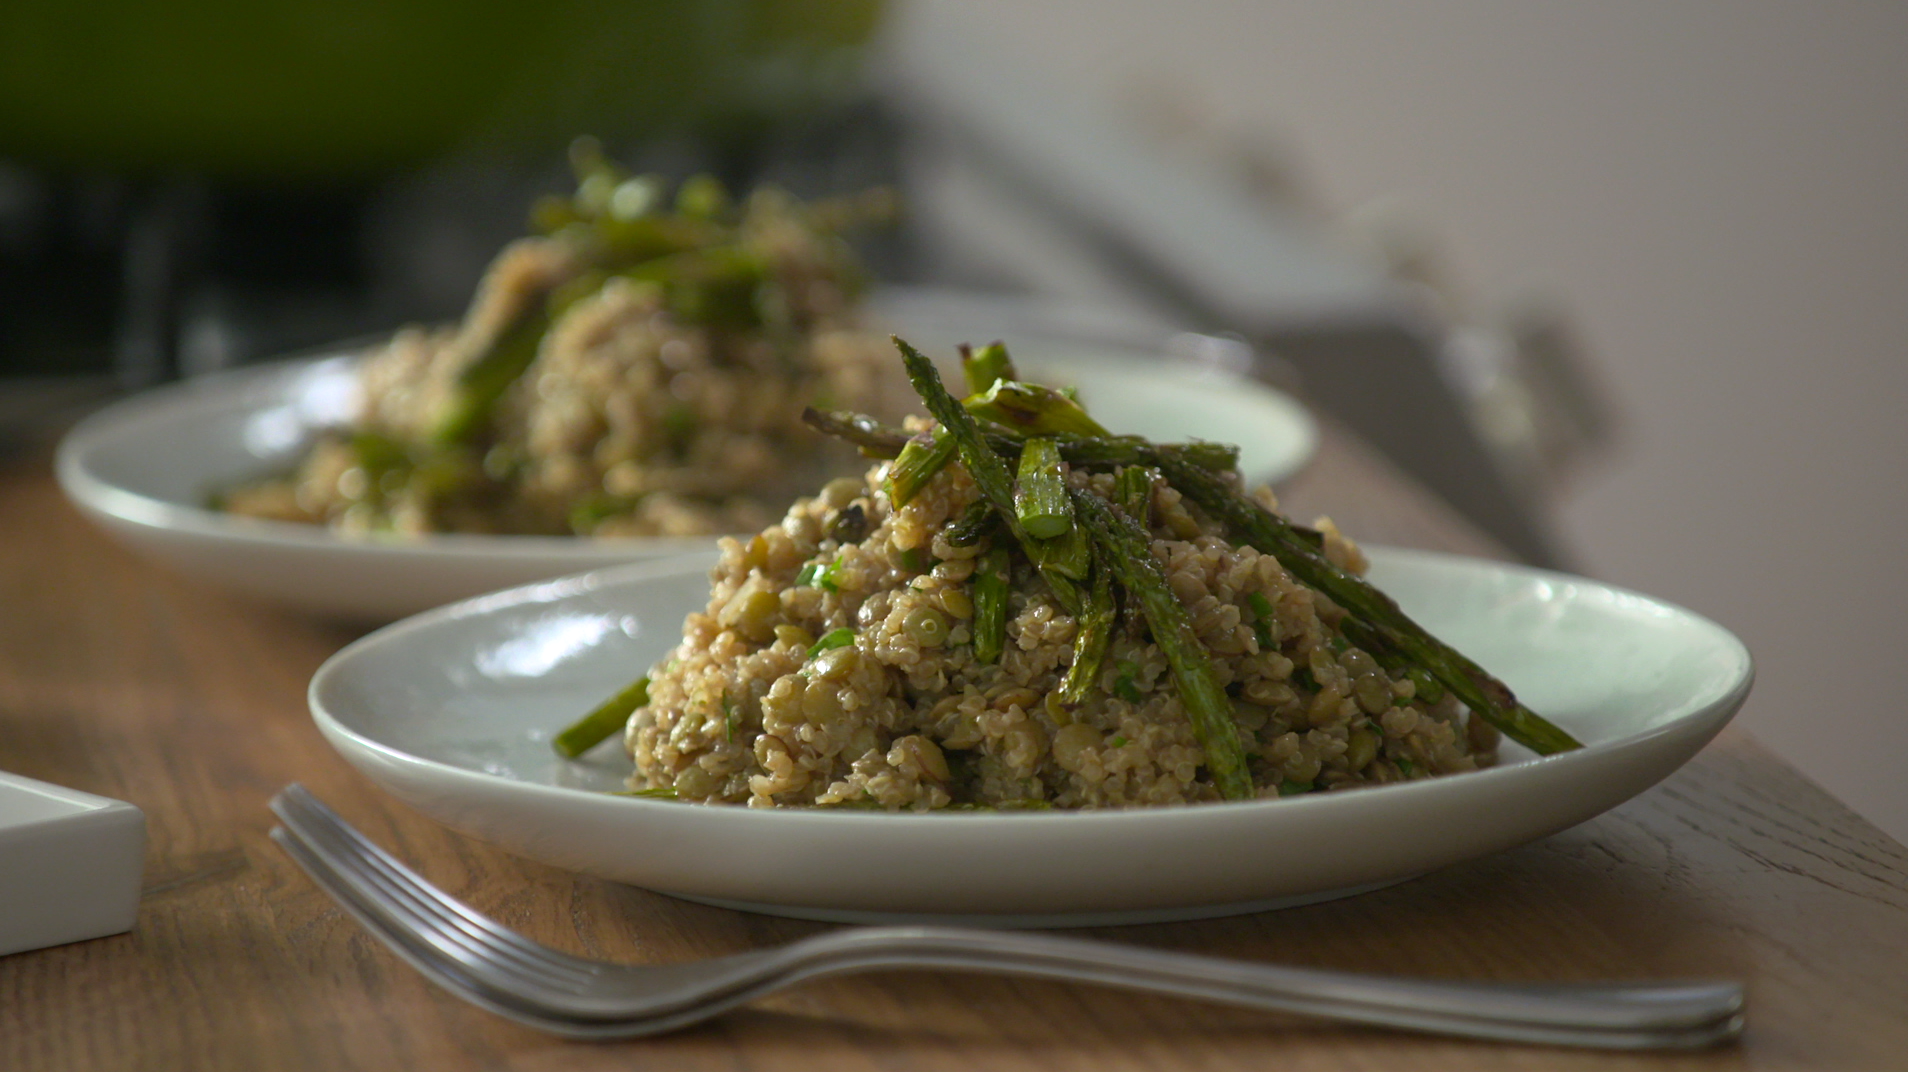 Wellness Wednesday: Spring quinoa mujadara with asparagus - AOL Food